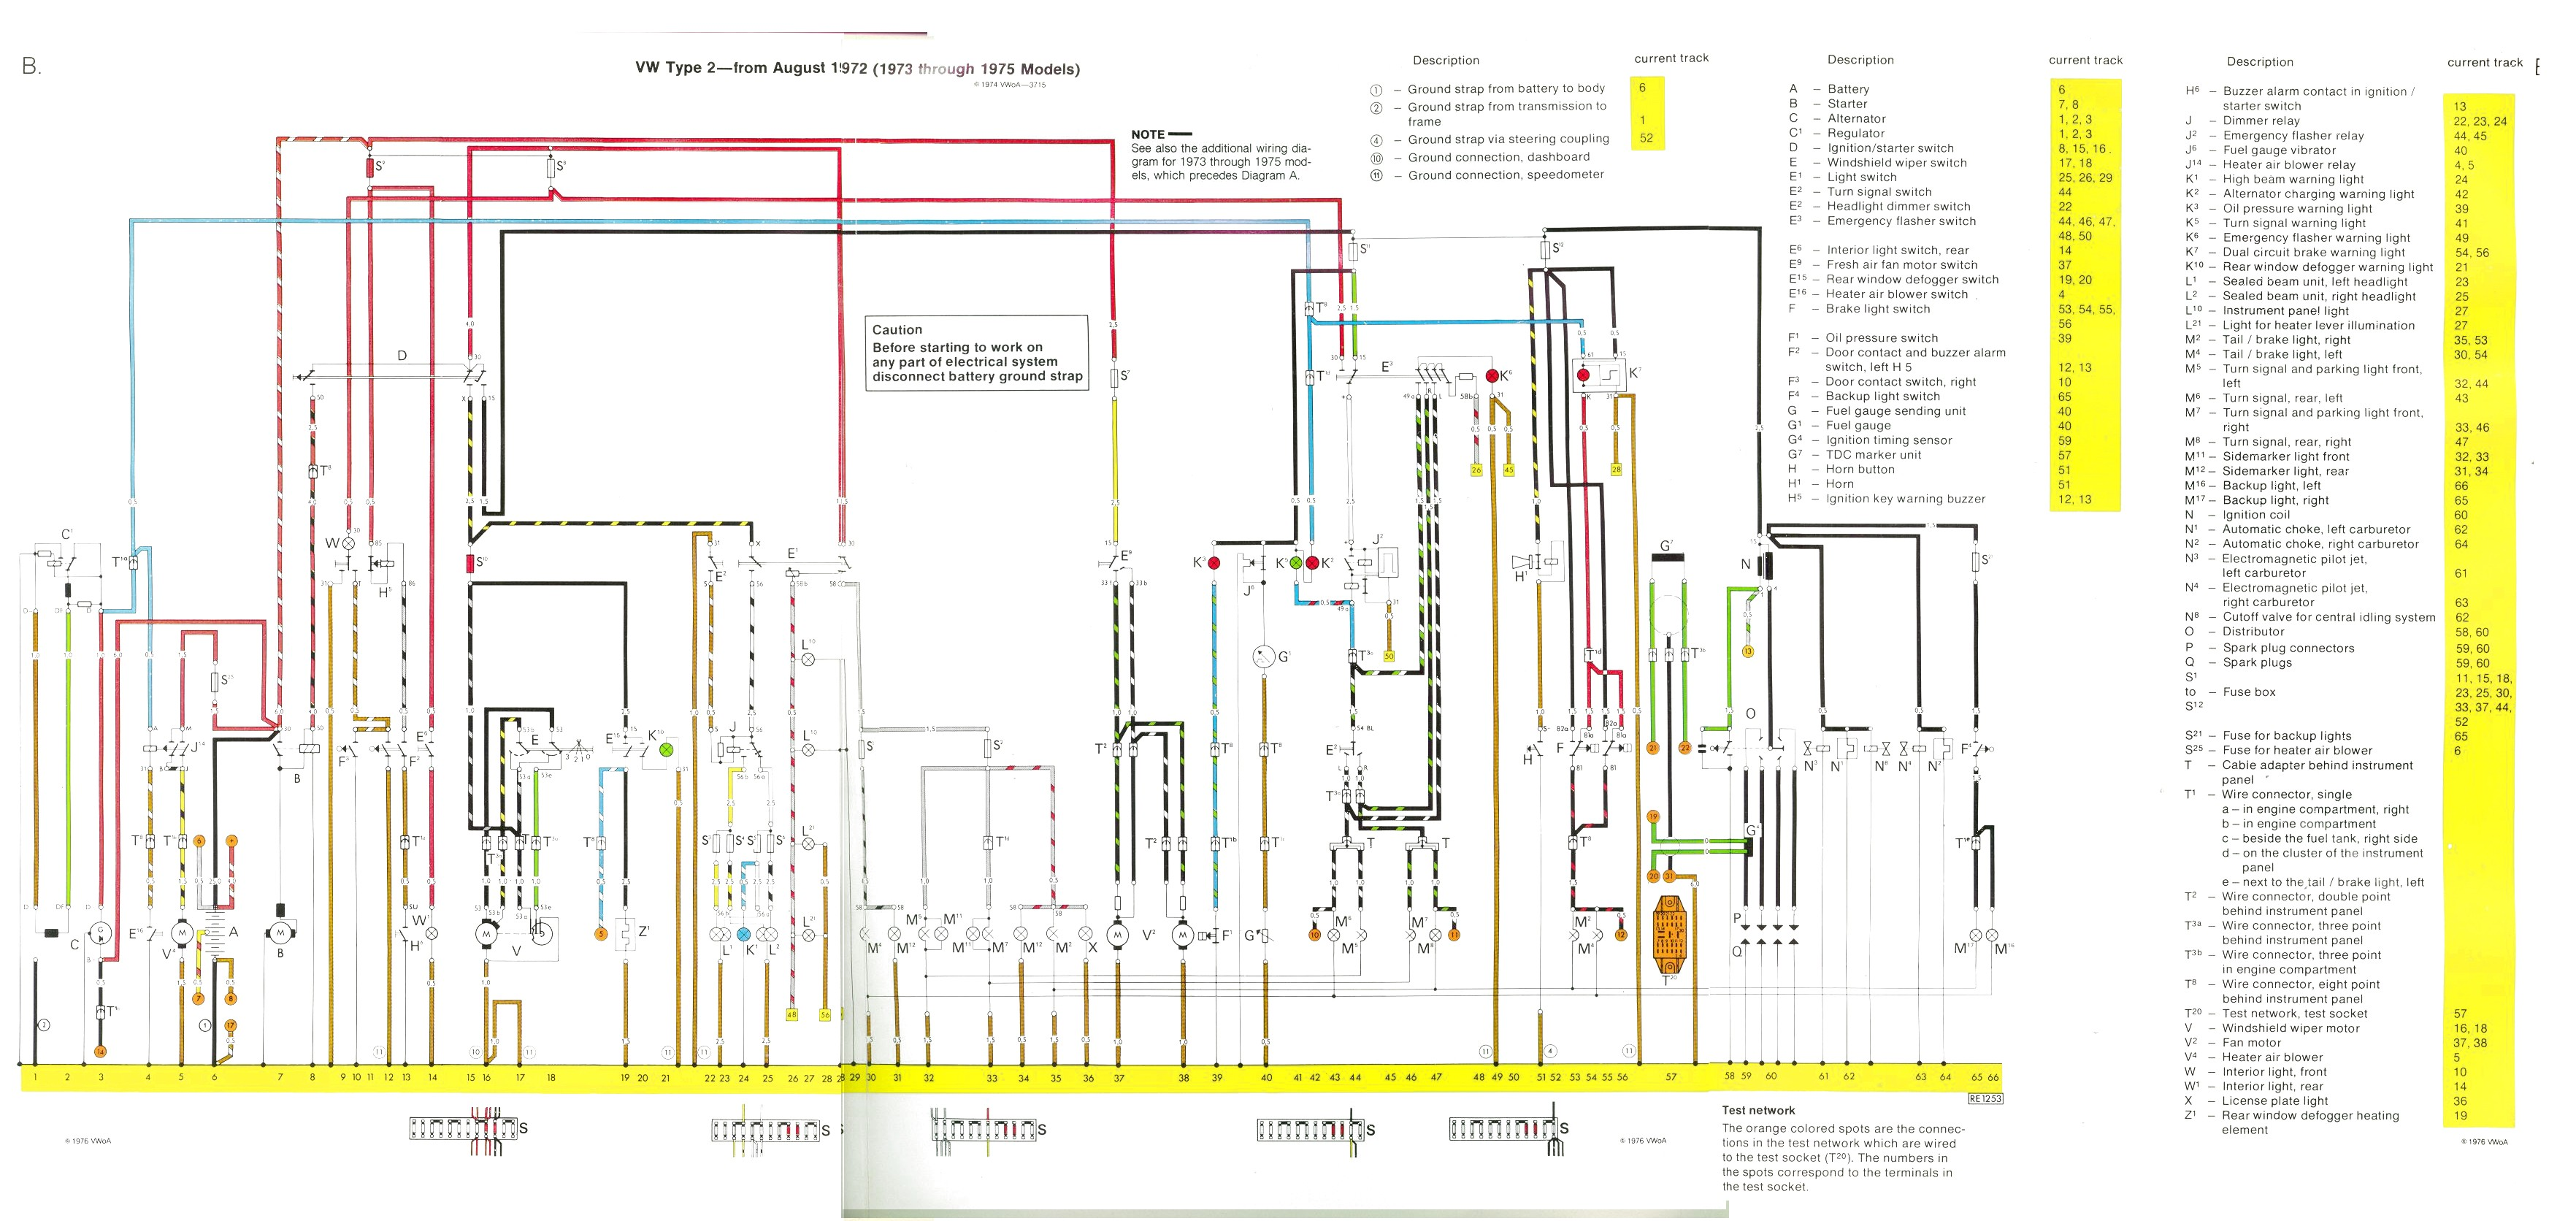 vw van wiring diagram vw wiring diagrams